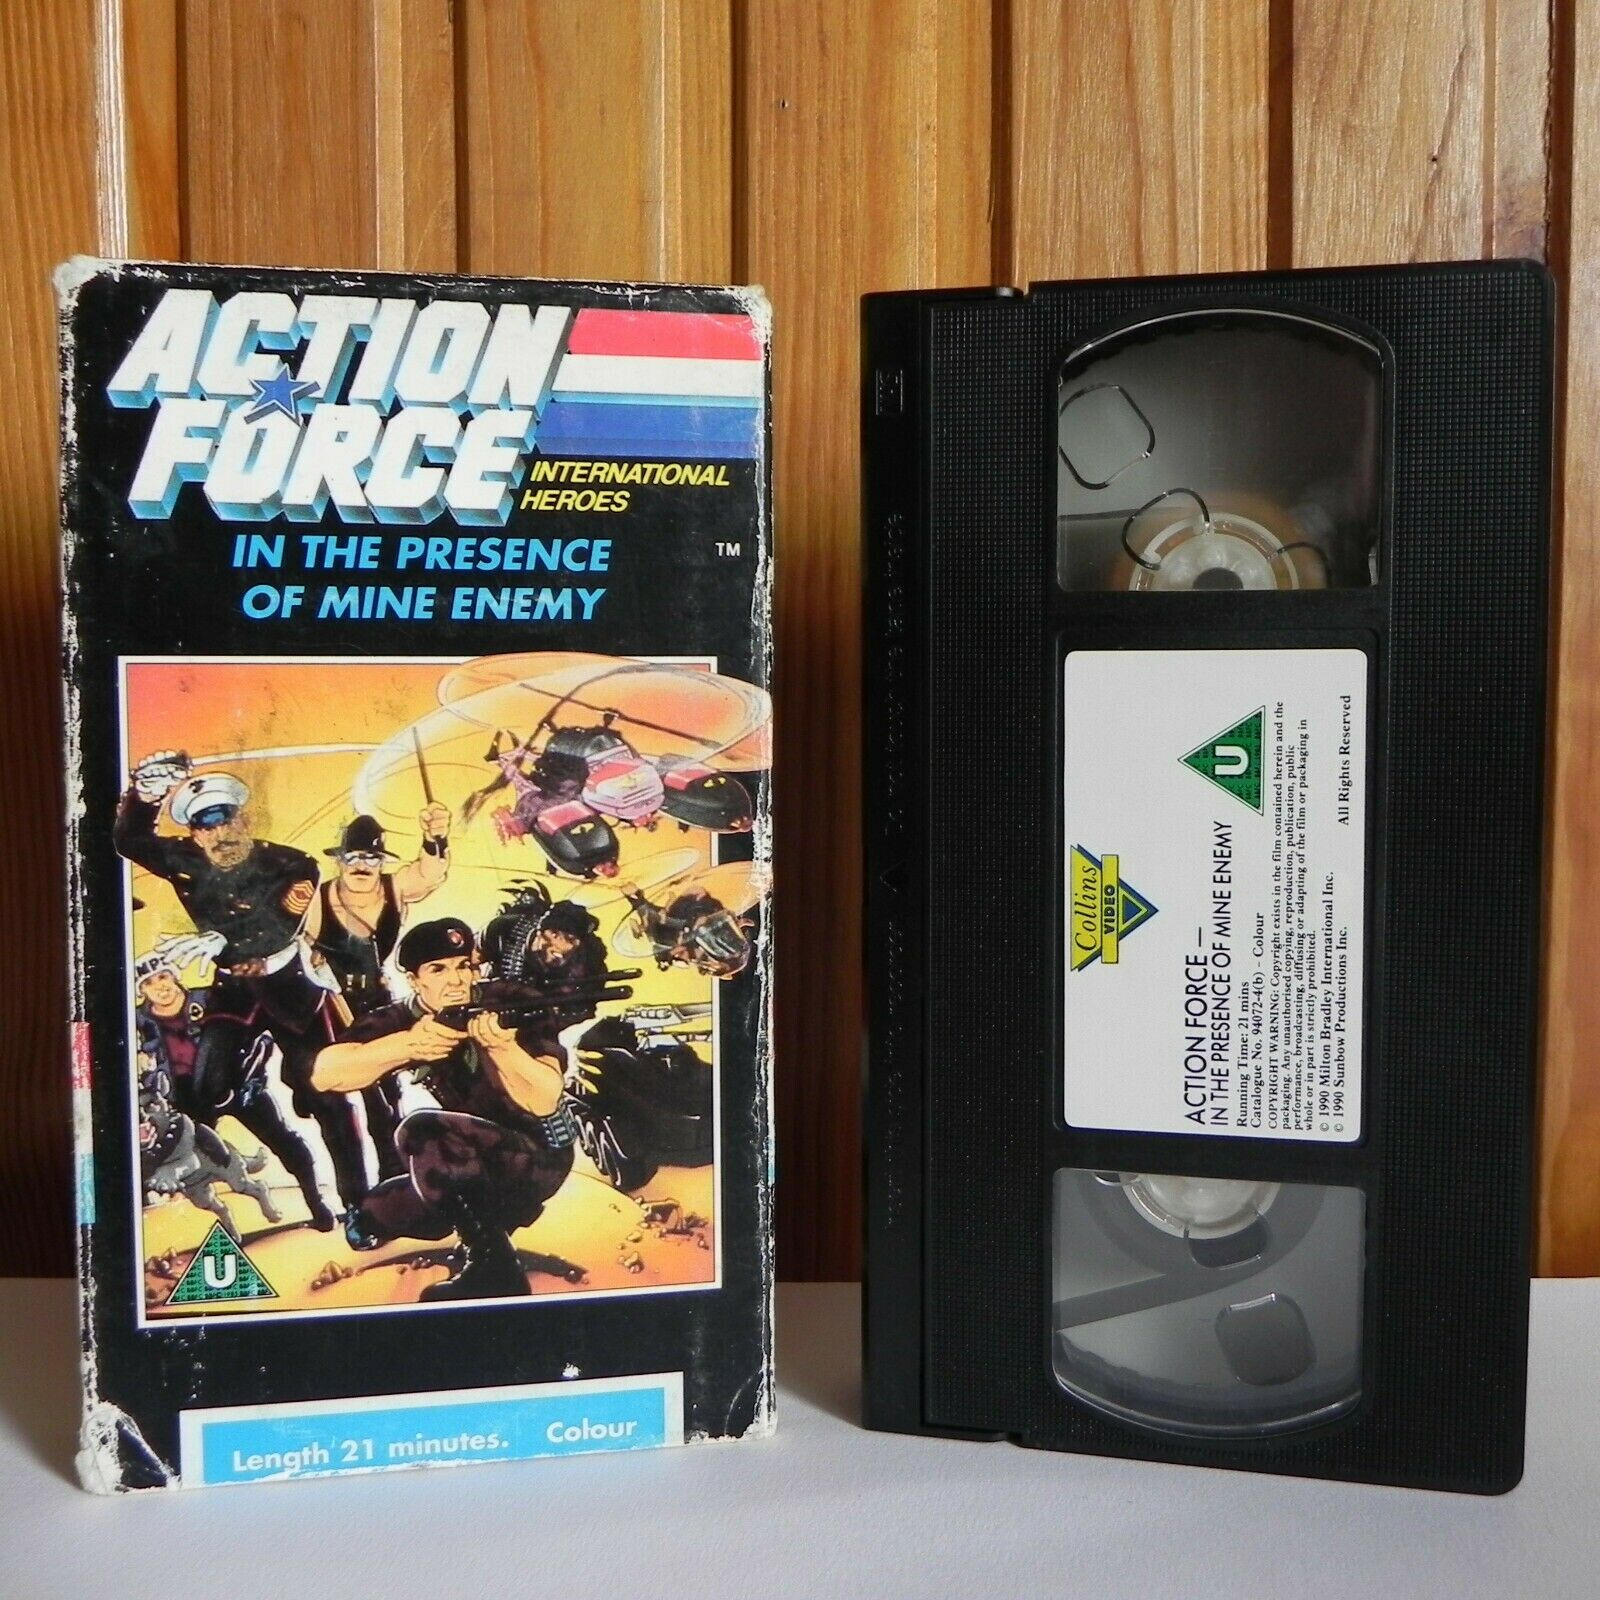 Action, ActionForce, Carton, Children's & Family, Educational, Enemy, In, Mine, Of, Pal, Presence, Ron Friedman, The, U, United Kingdom, VHS